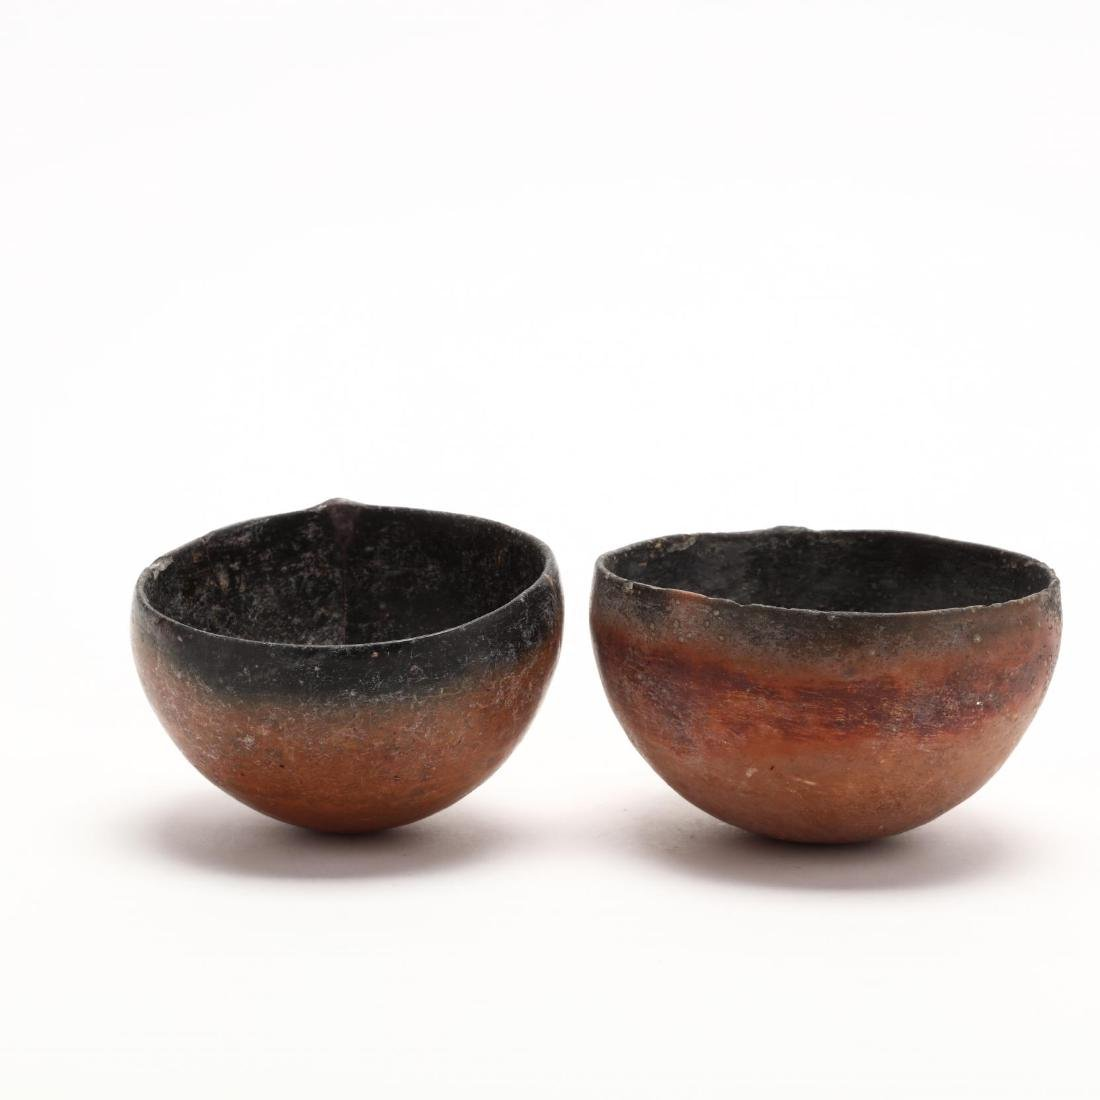 Two Cypriot Bronze Age Polished Red Ware Bowls - 3